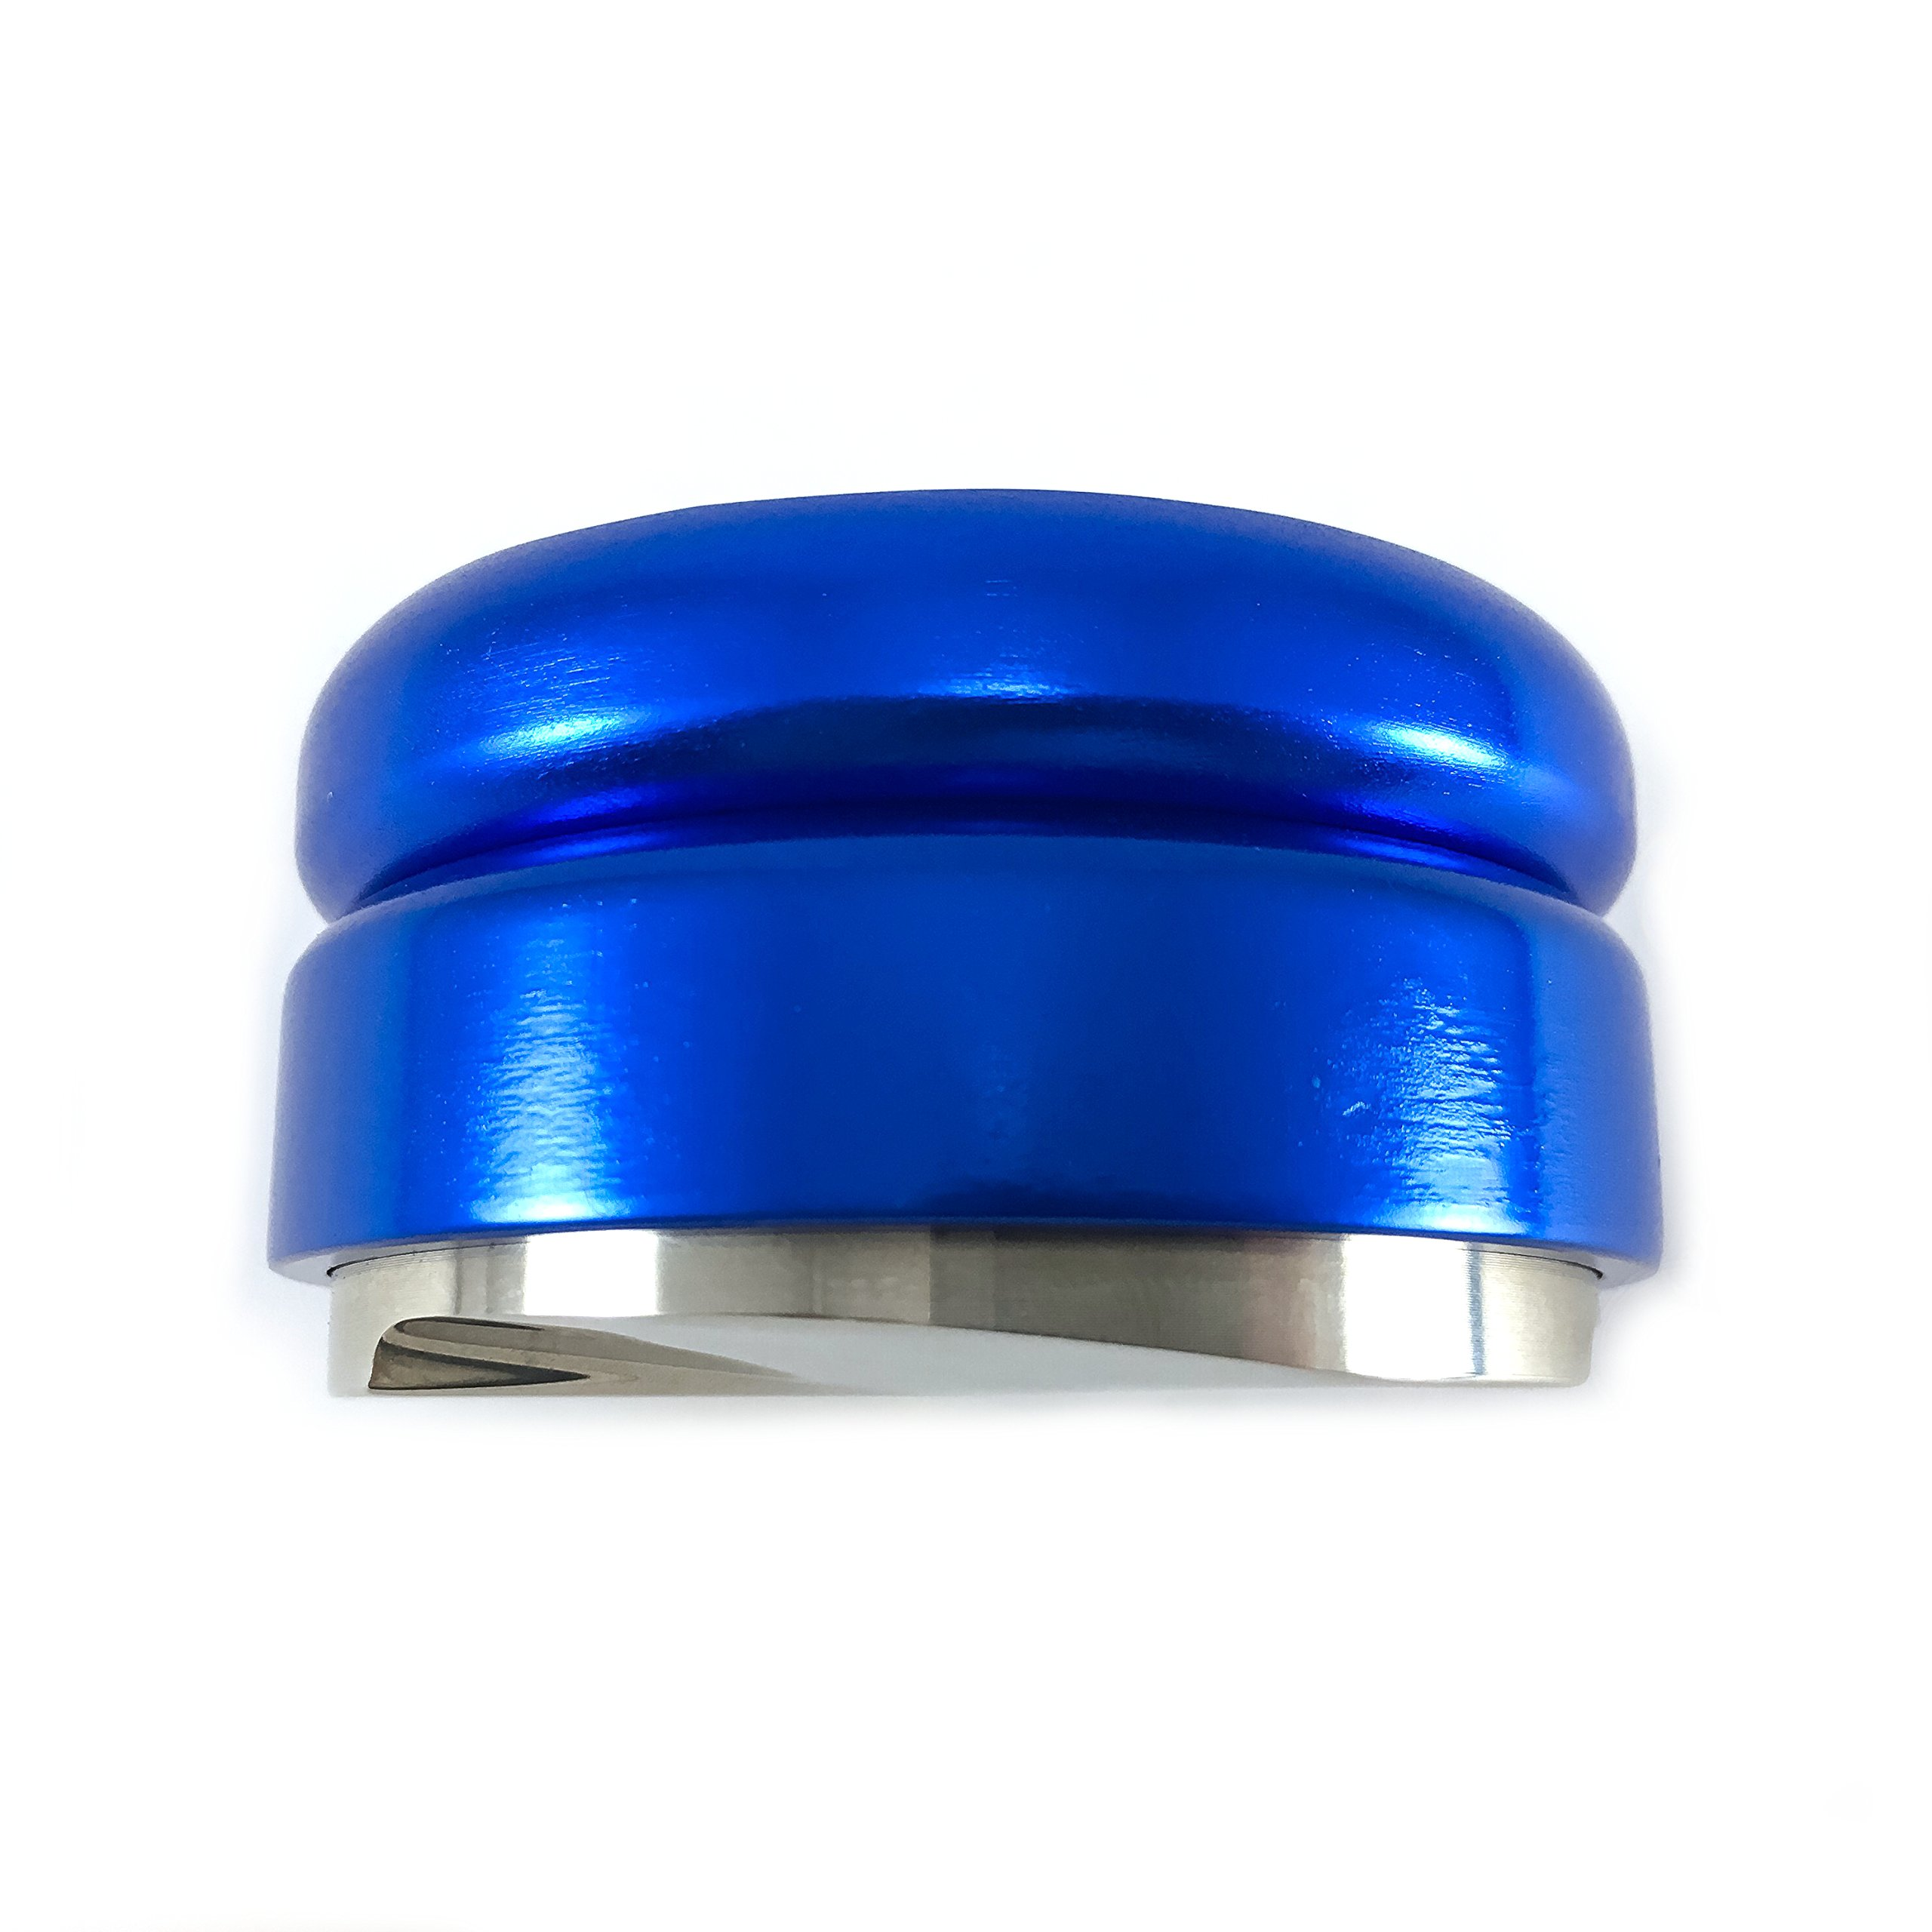 Coffee Distributor/Leveler Tool – for 58mm Espresso Portafilters – EVENLY DISTRIBUTES COFFEE GROUNDS – Provides Proper Tamping - ADJUSTABLE (58mm, Blue) by Coffee Nebula (Image #5)